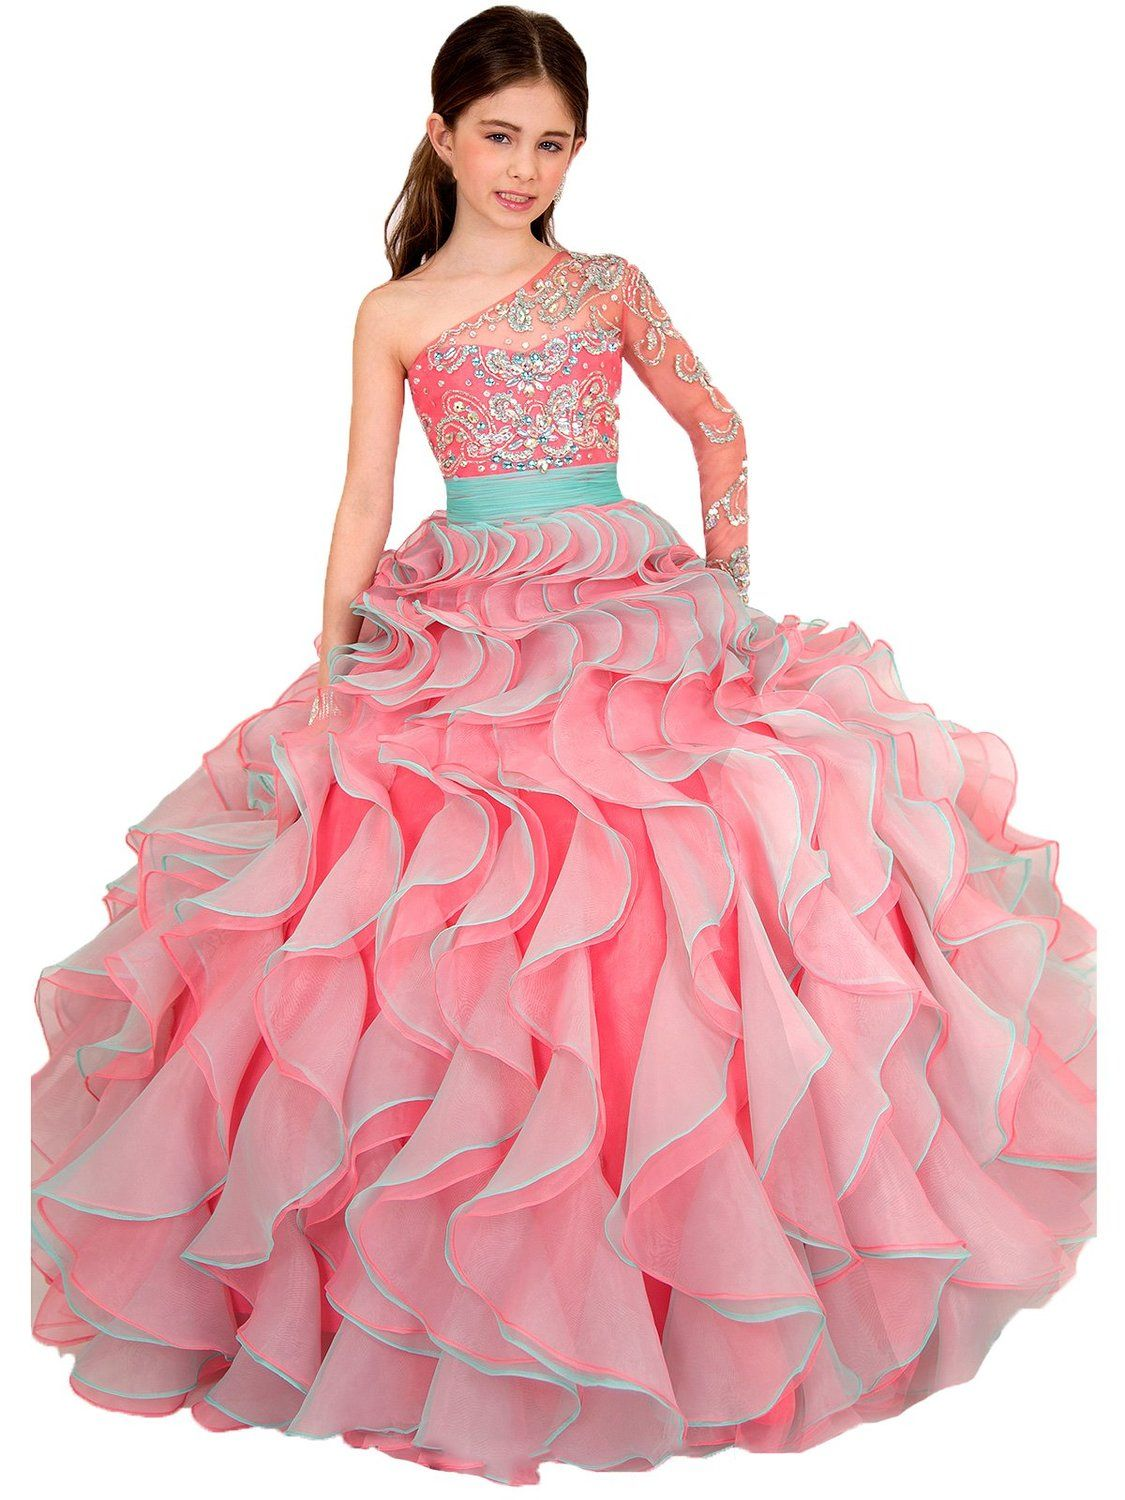 Puffy girlus beaded one shoulder flower girl dresses for wedding